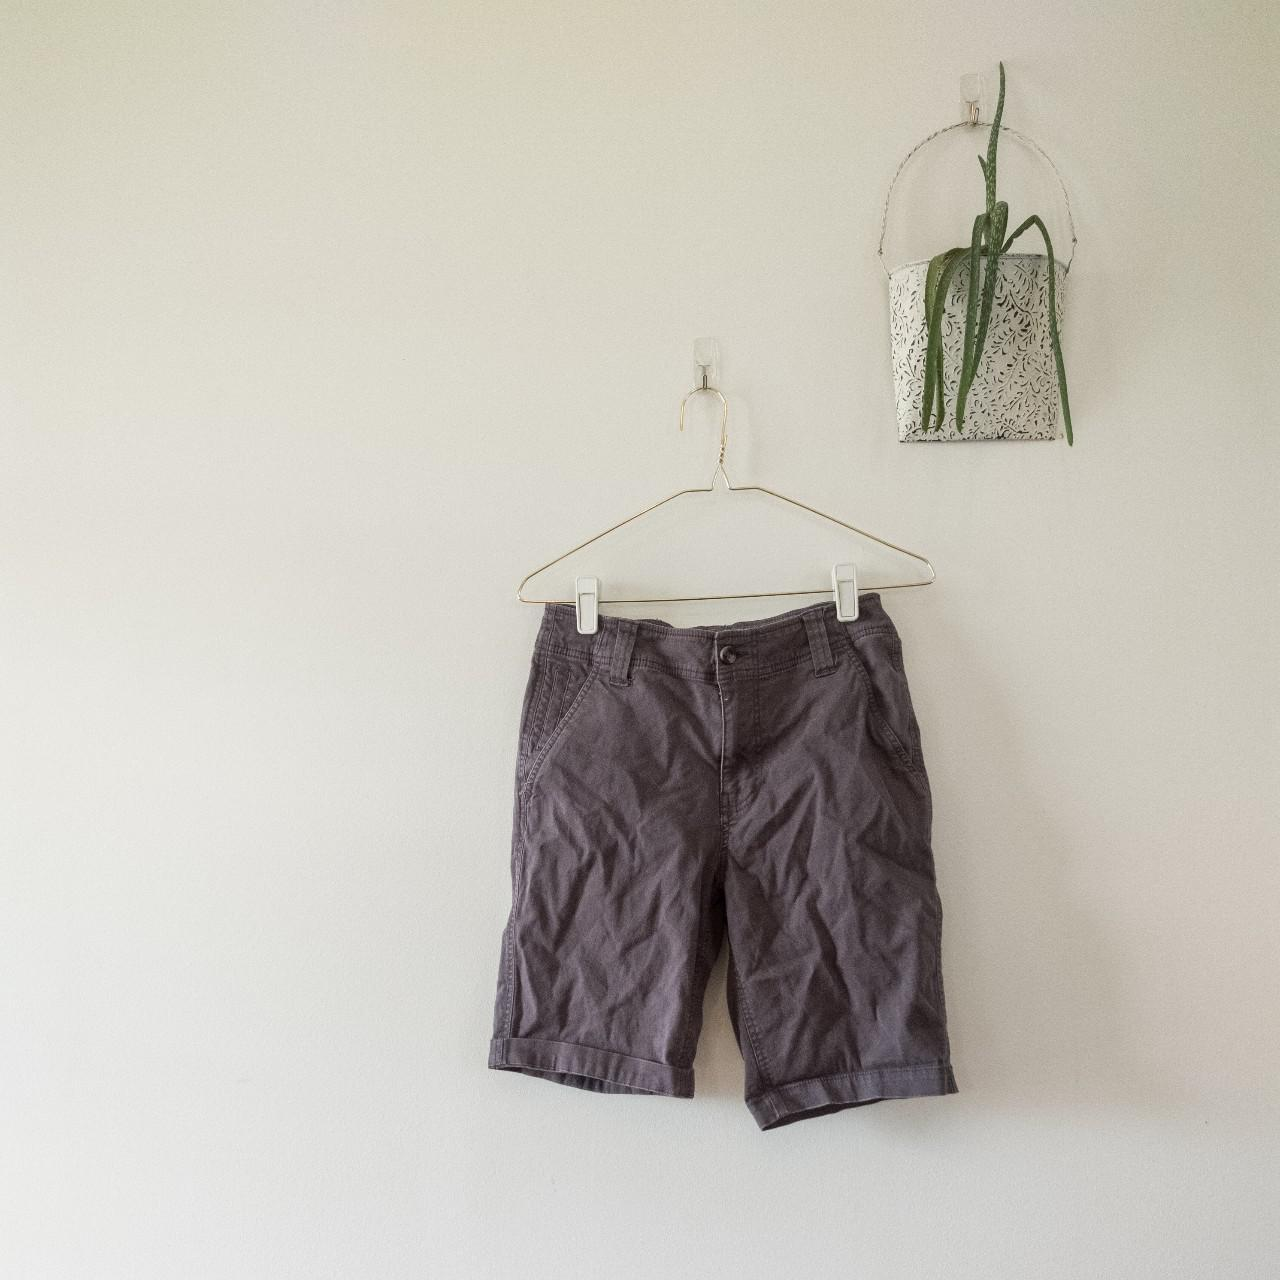 Product Image 1 - MOSSIMO OLIVE BERMUDA SHORTS  Neutral green